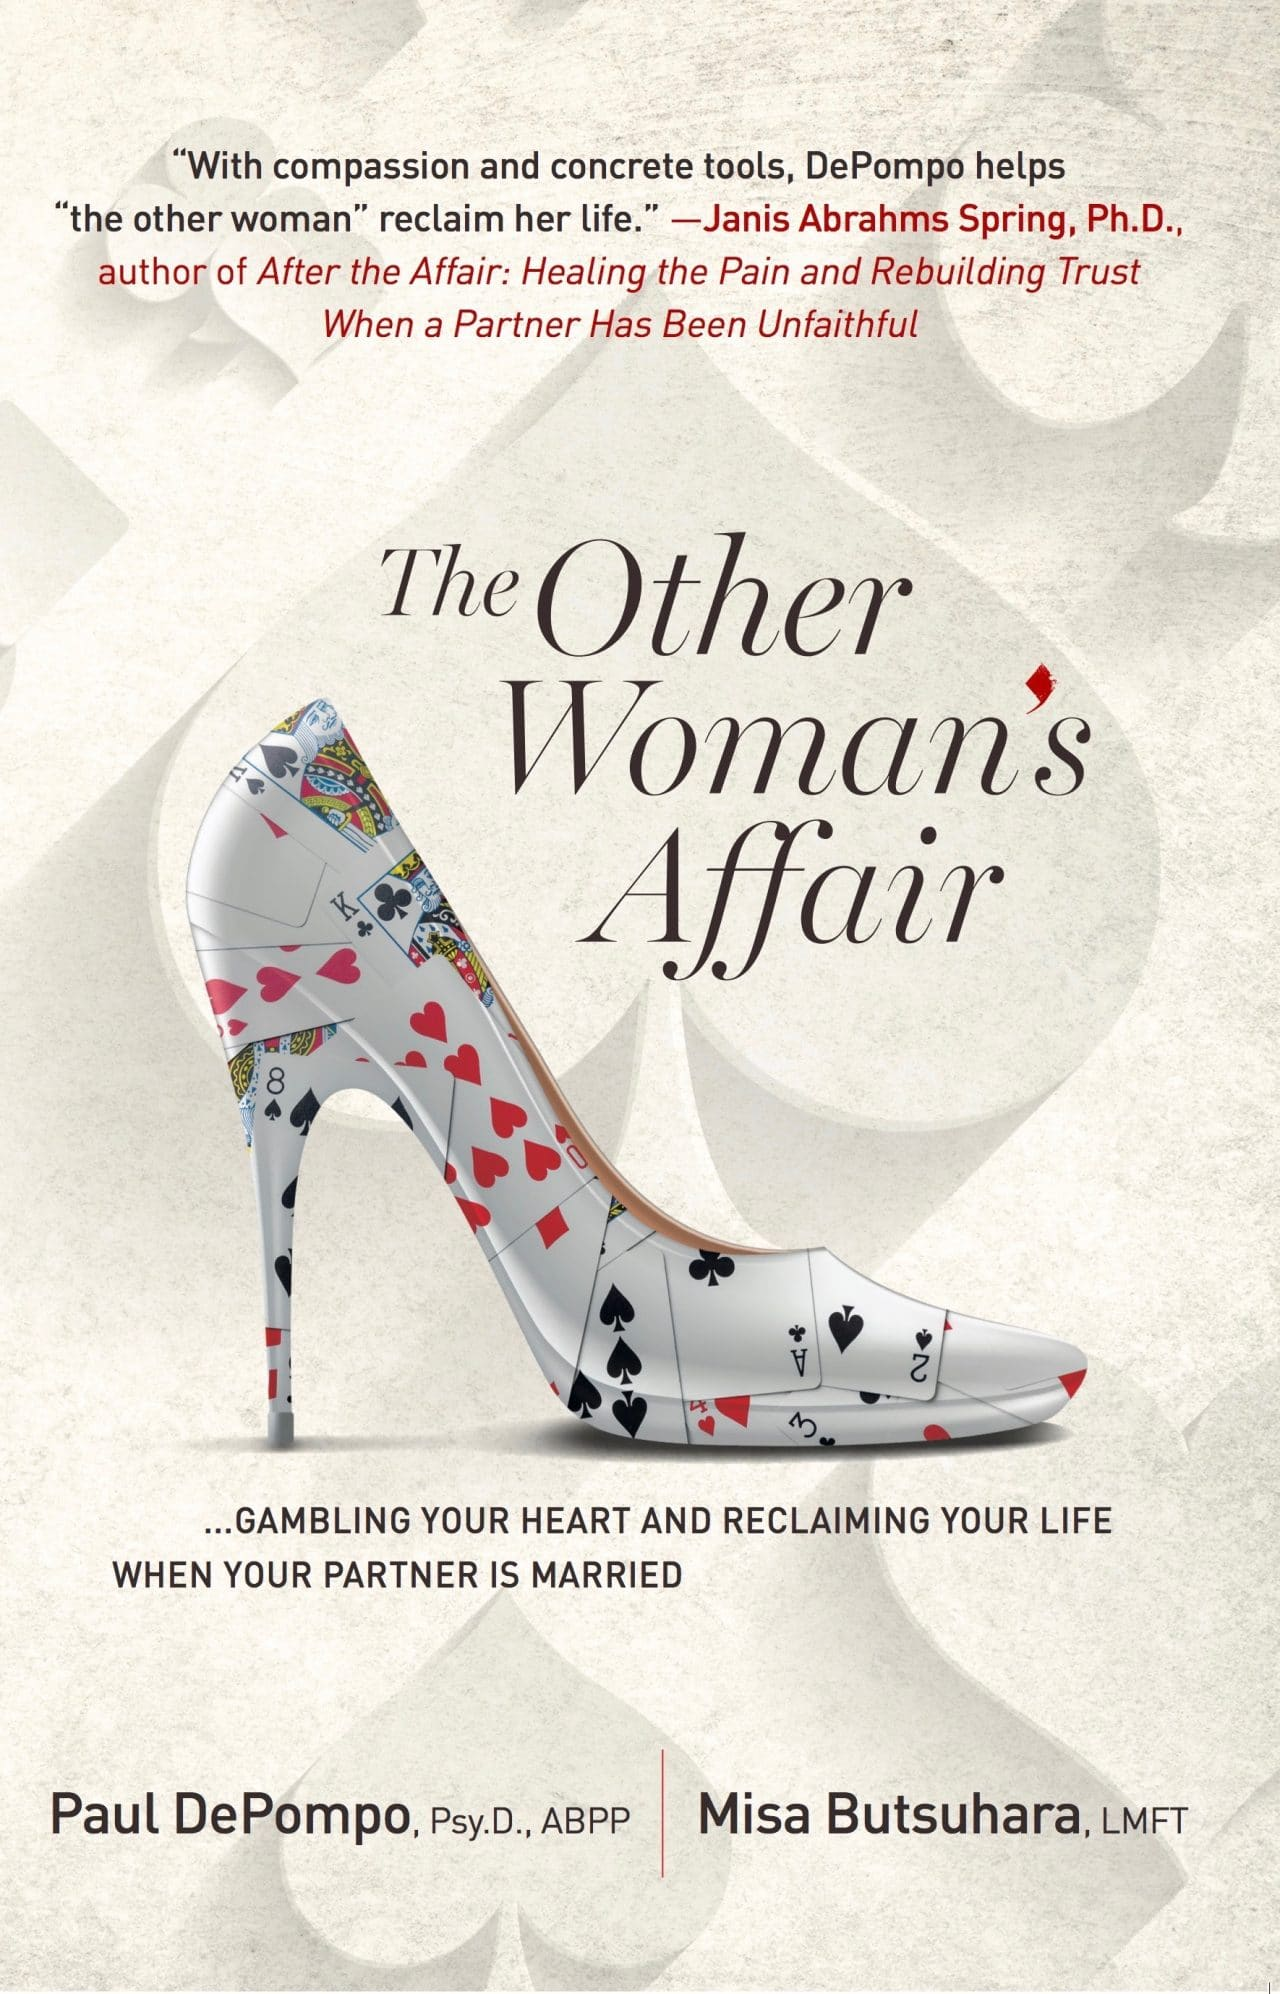 The Other's Woman's Affair… Gambling Your Heart And Reclaming Your Life When Your Partner Is Married